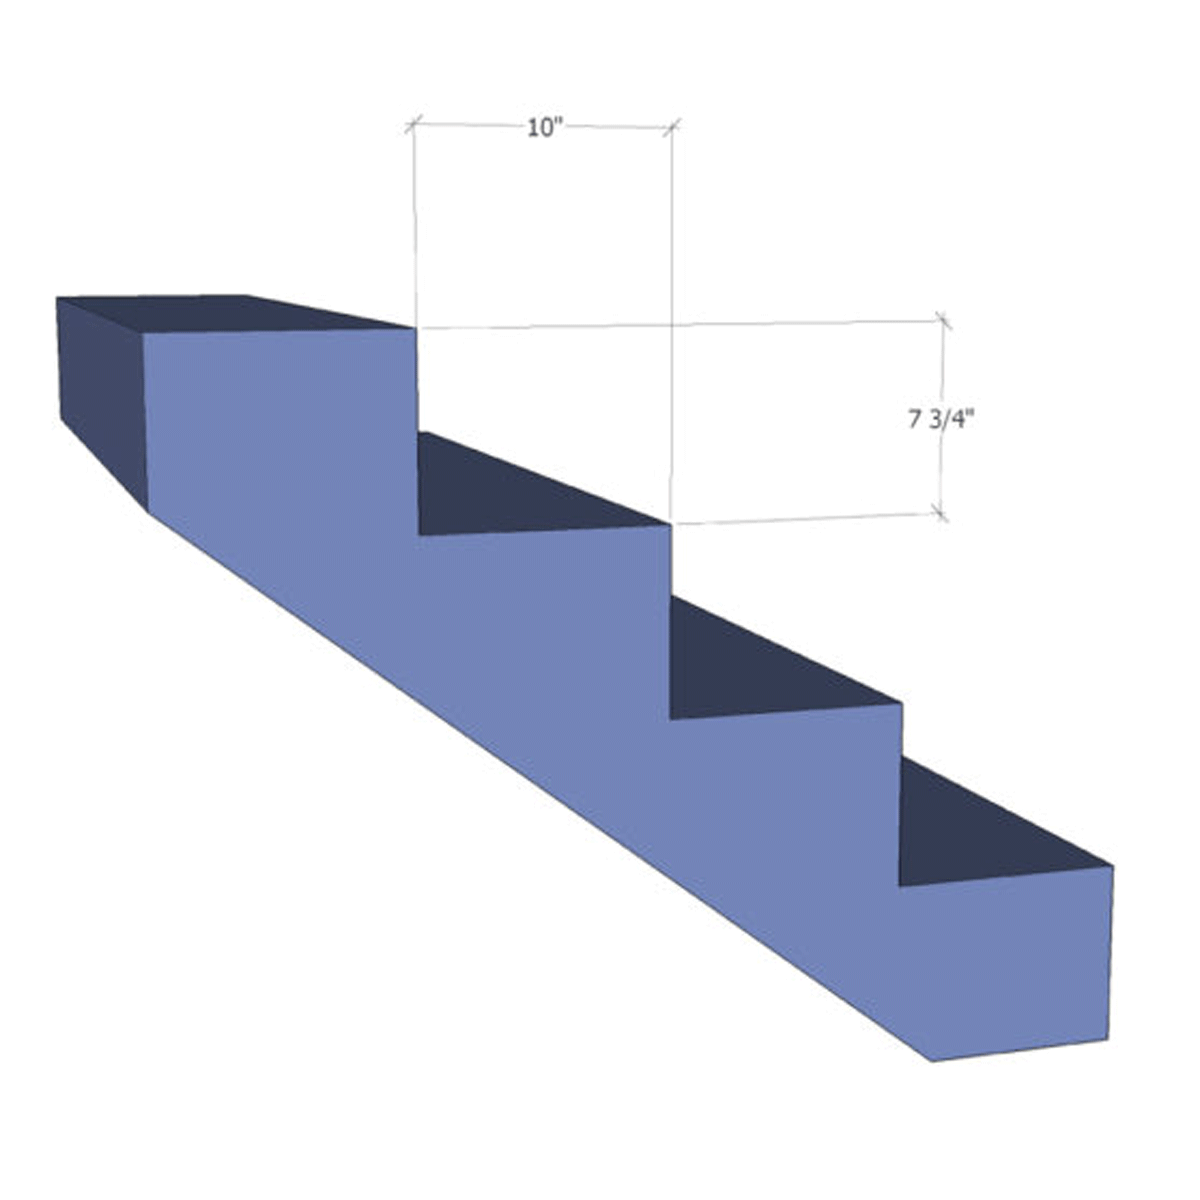 "IRC code limit stair: rise r ≤ 7 3/4"" run R ≥ 10"" r+R = 17 3/4"" (good) 2r+R = 25 1/2"" (within range) → stair will be comfortable"